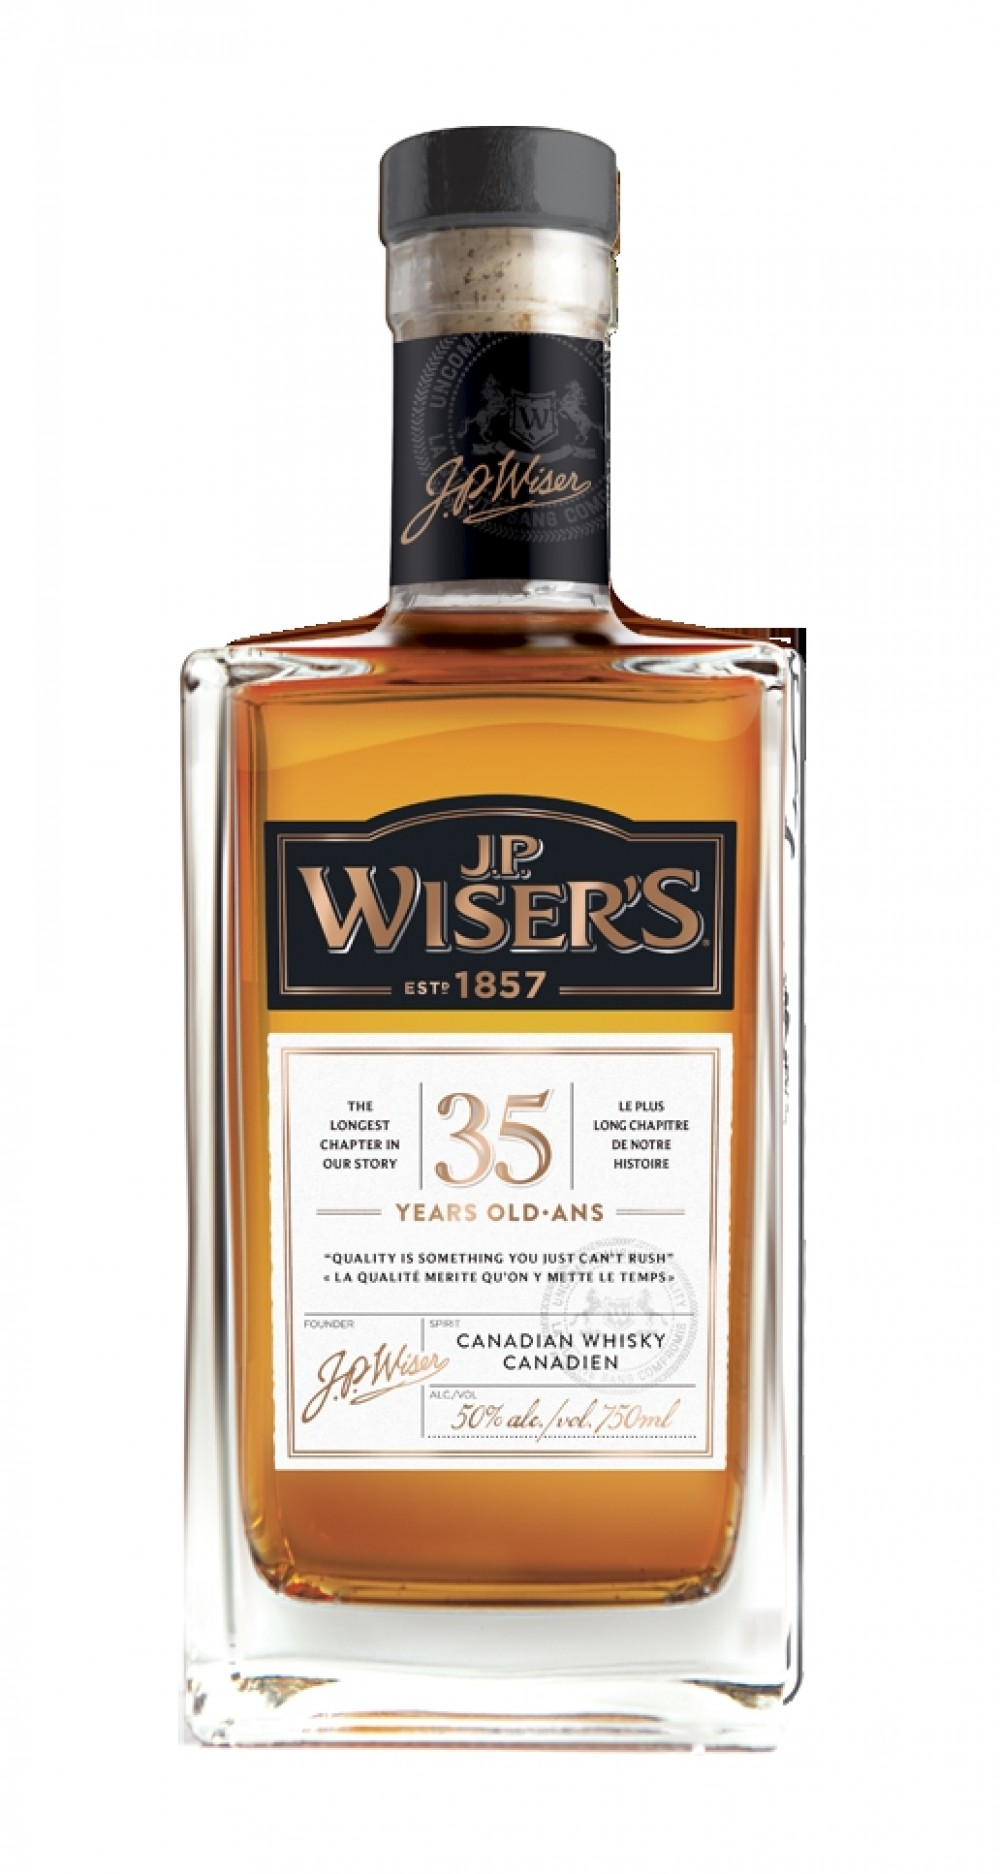 Honey Oak Review Of Wiser's 35 Years Old By @talexander - Whisky Connosr